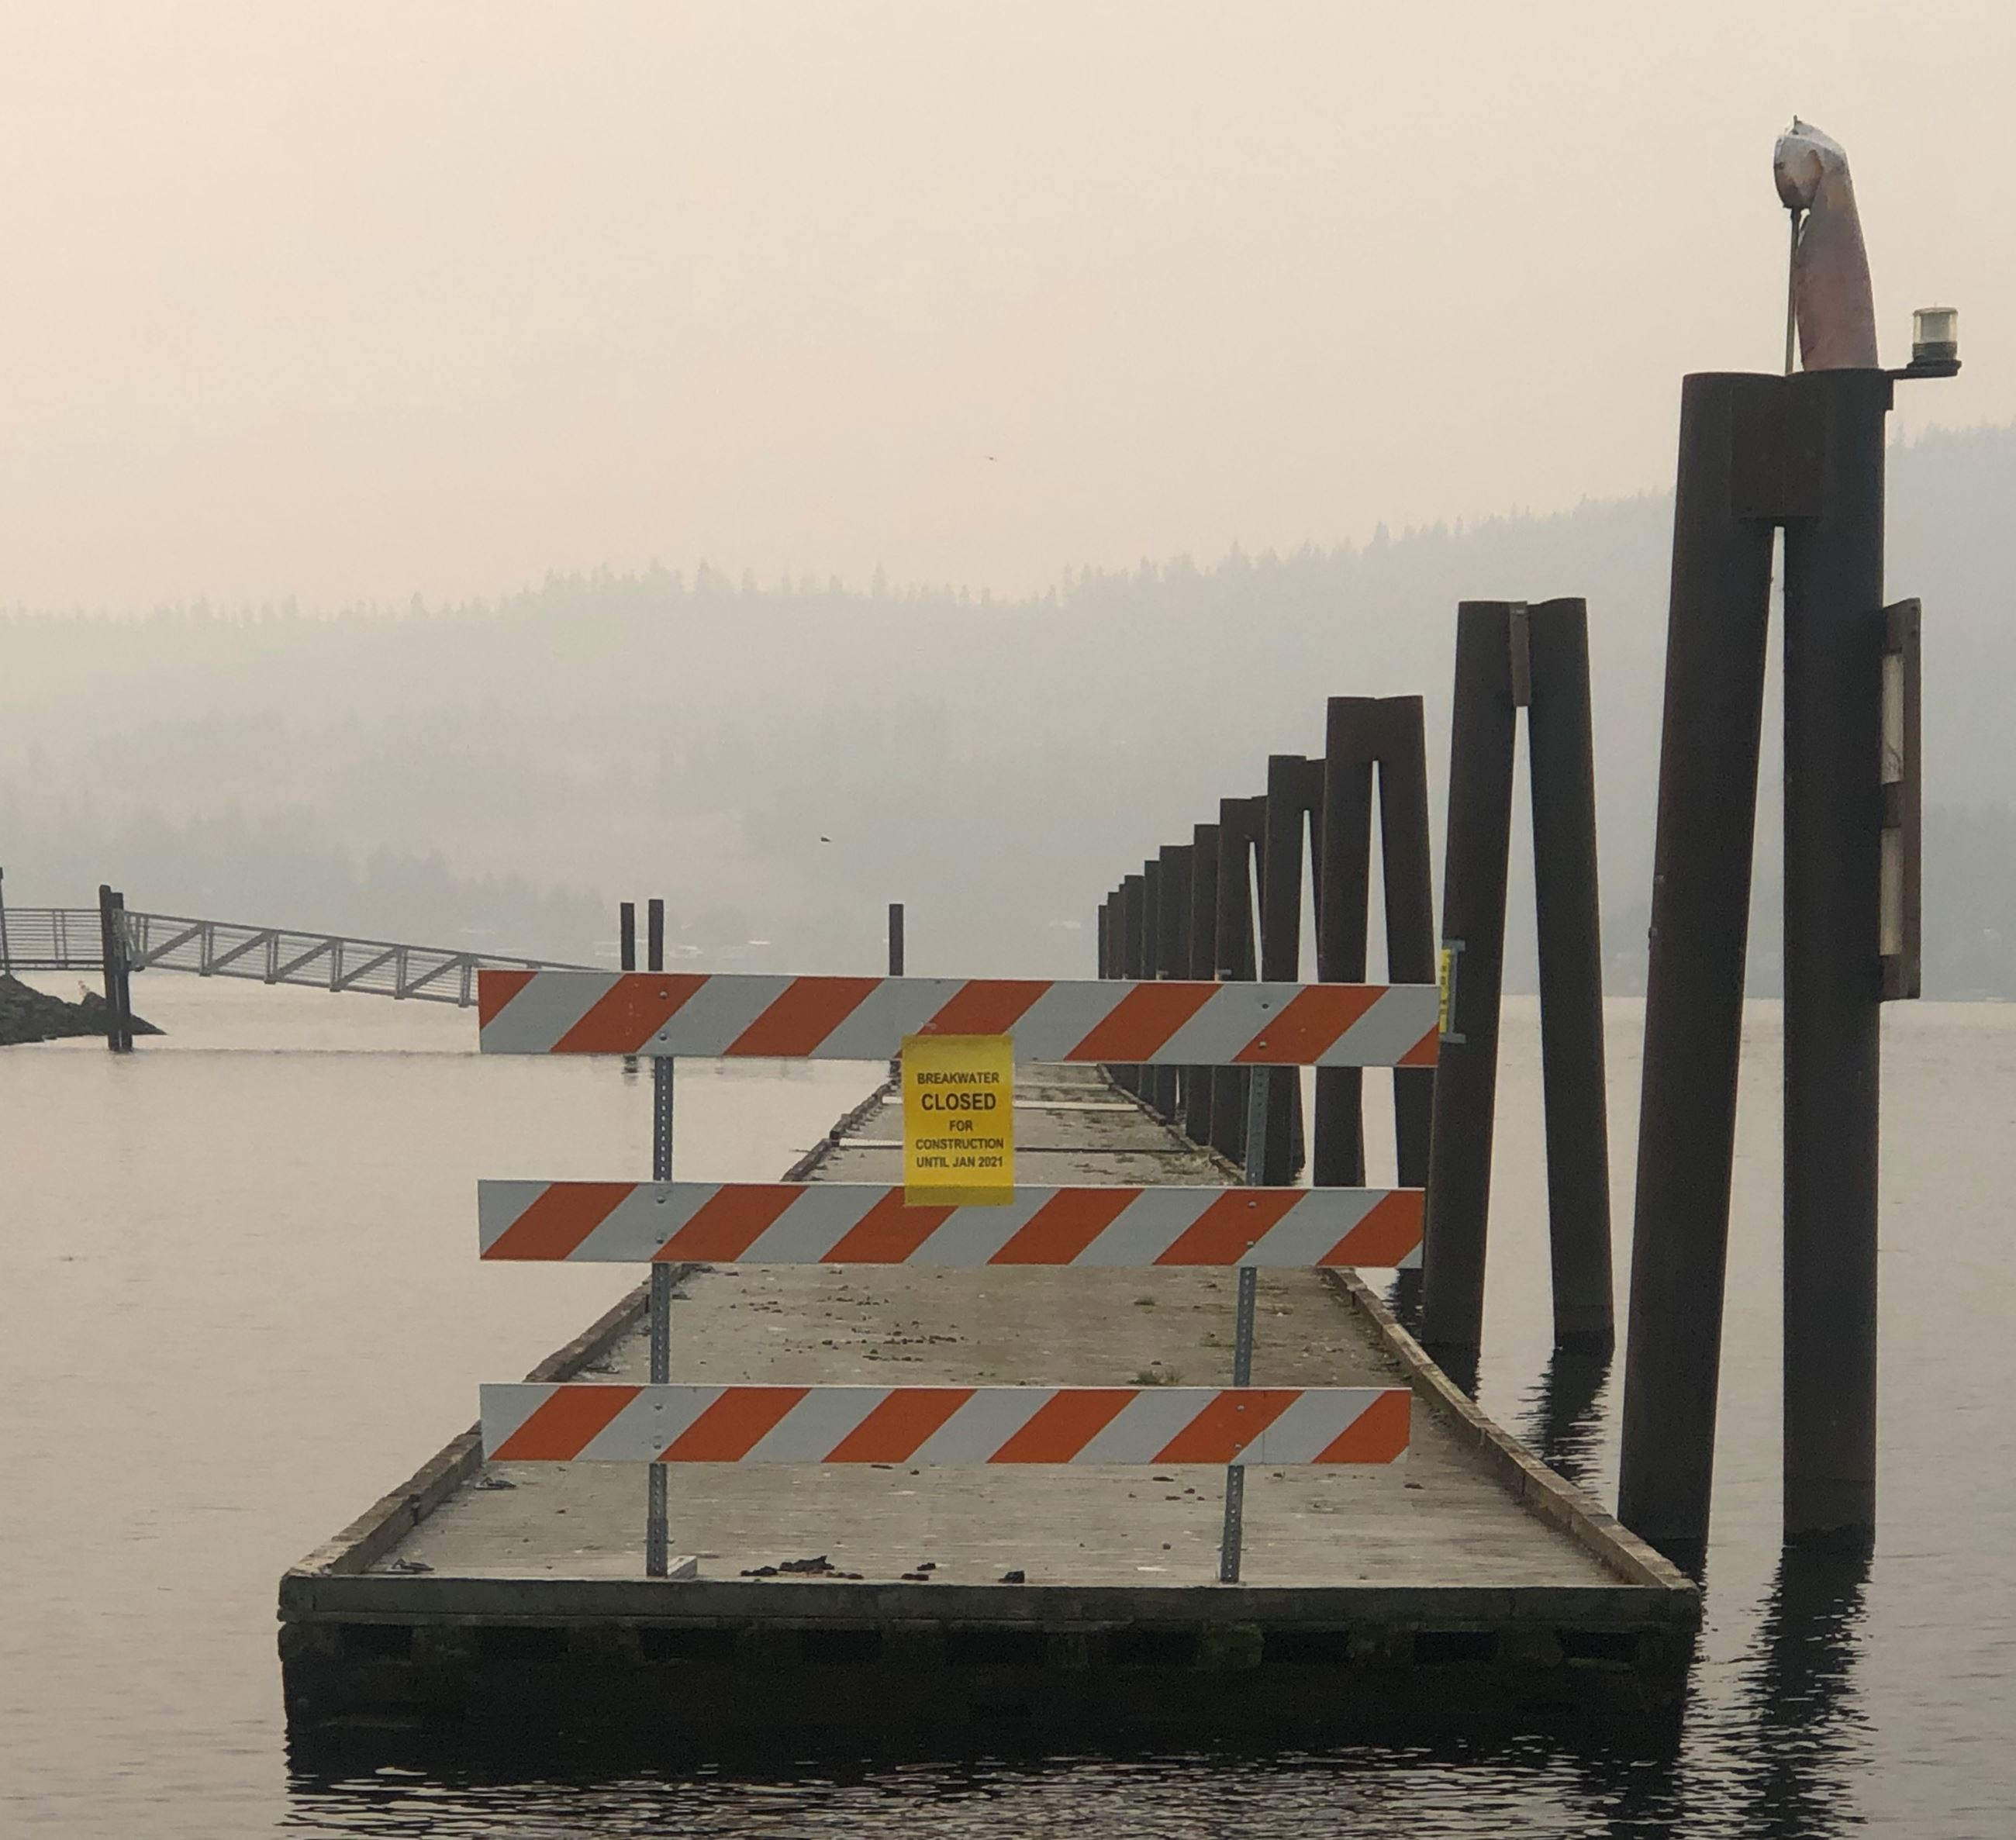 Harrison Breakwater closed for construction